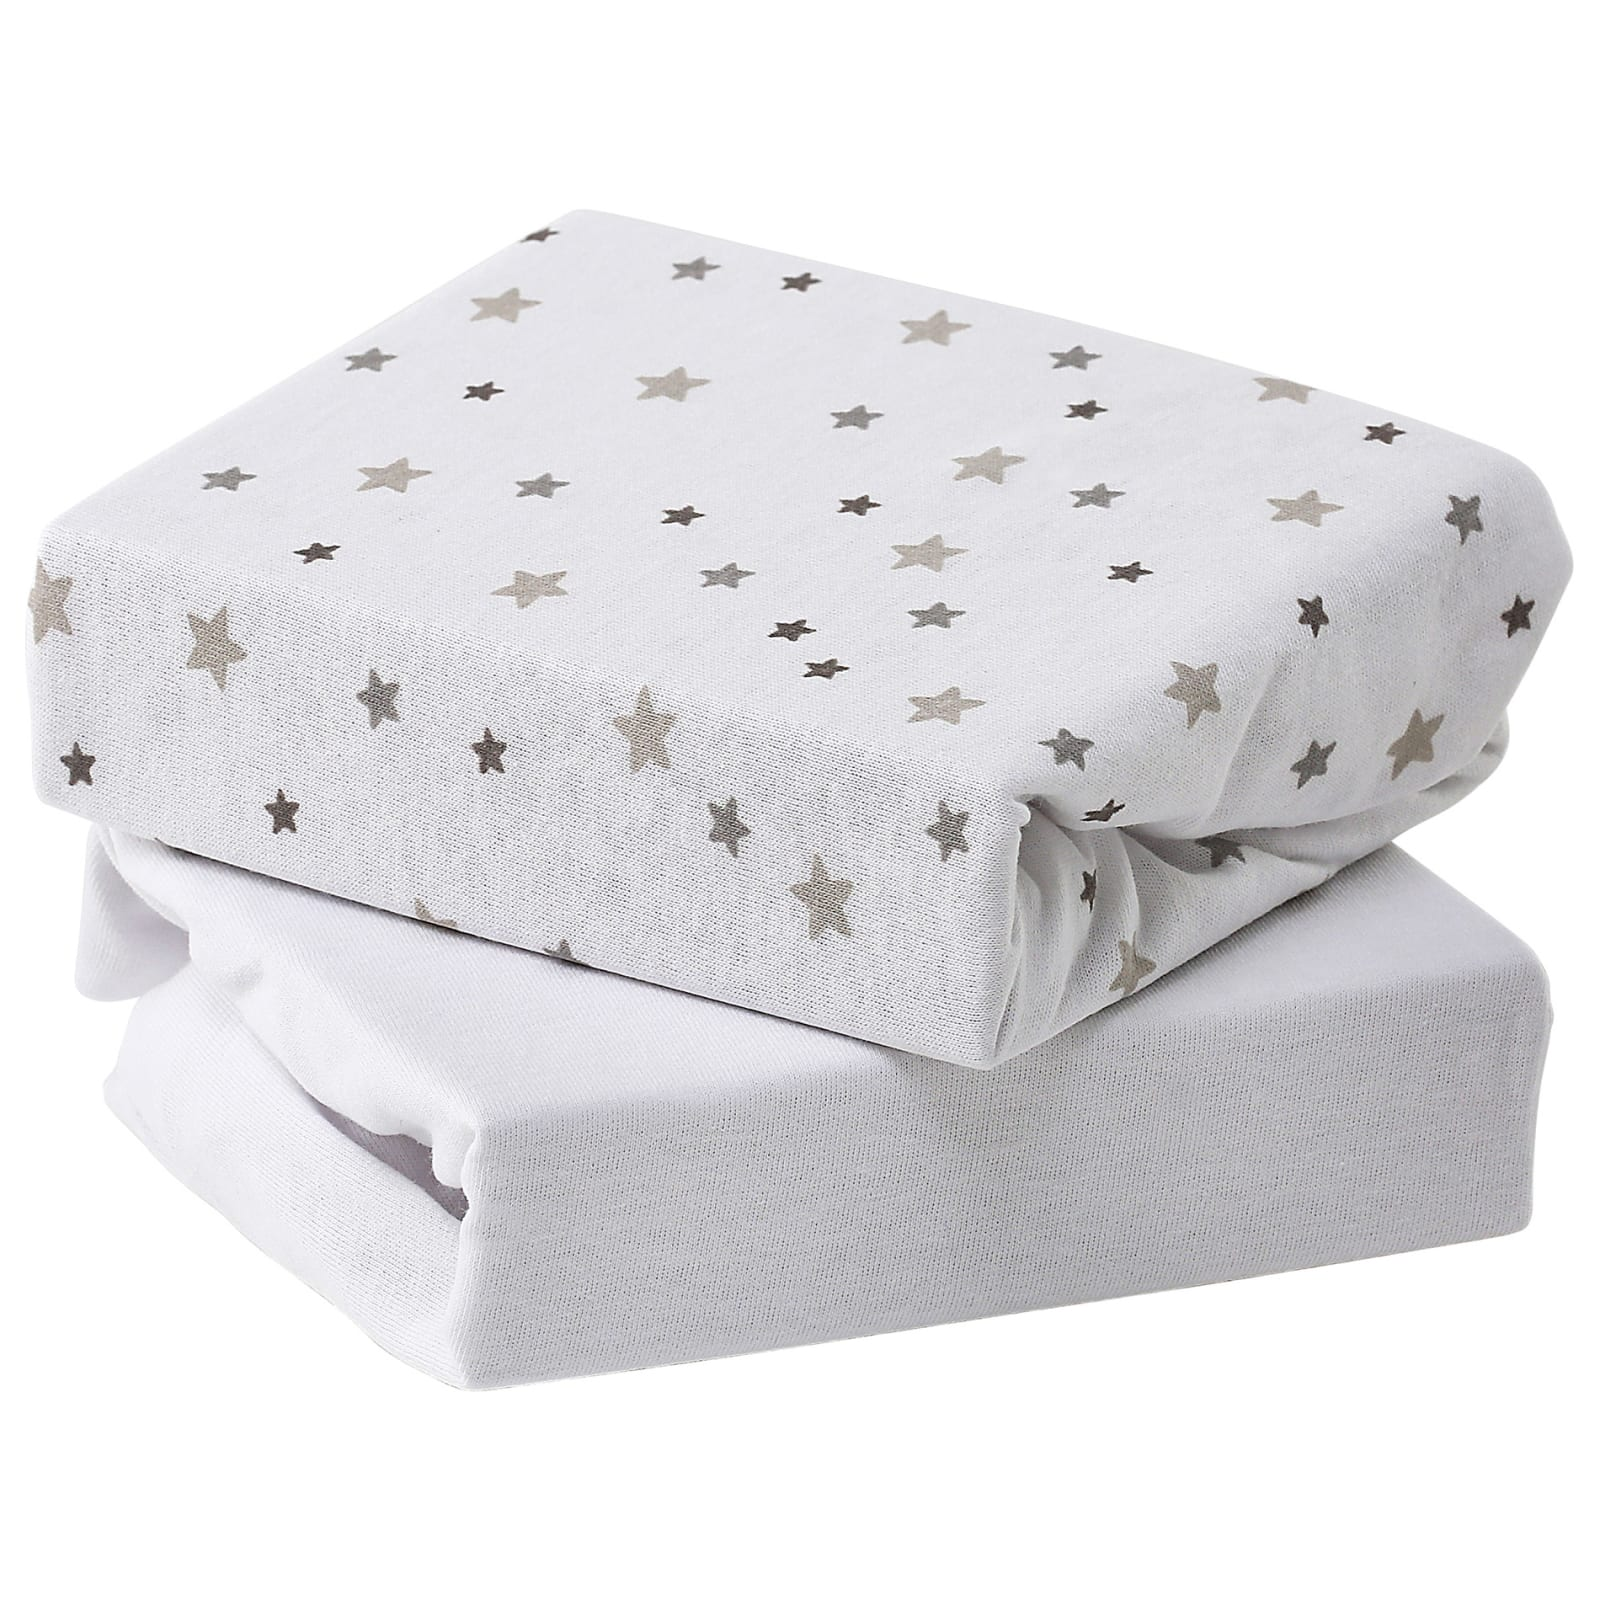 Baby Elegance Travel Cot Fitted Sheet Pack of 2, Cream